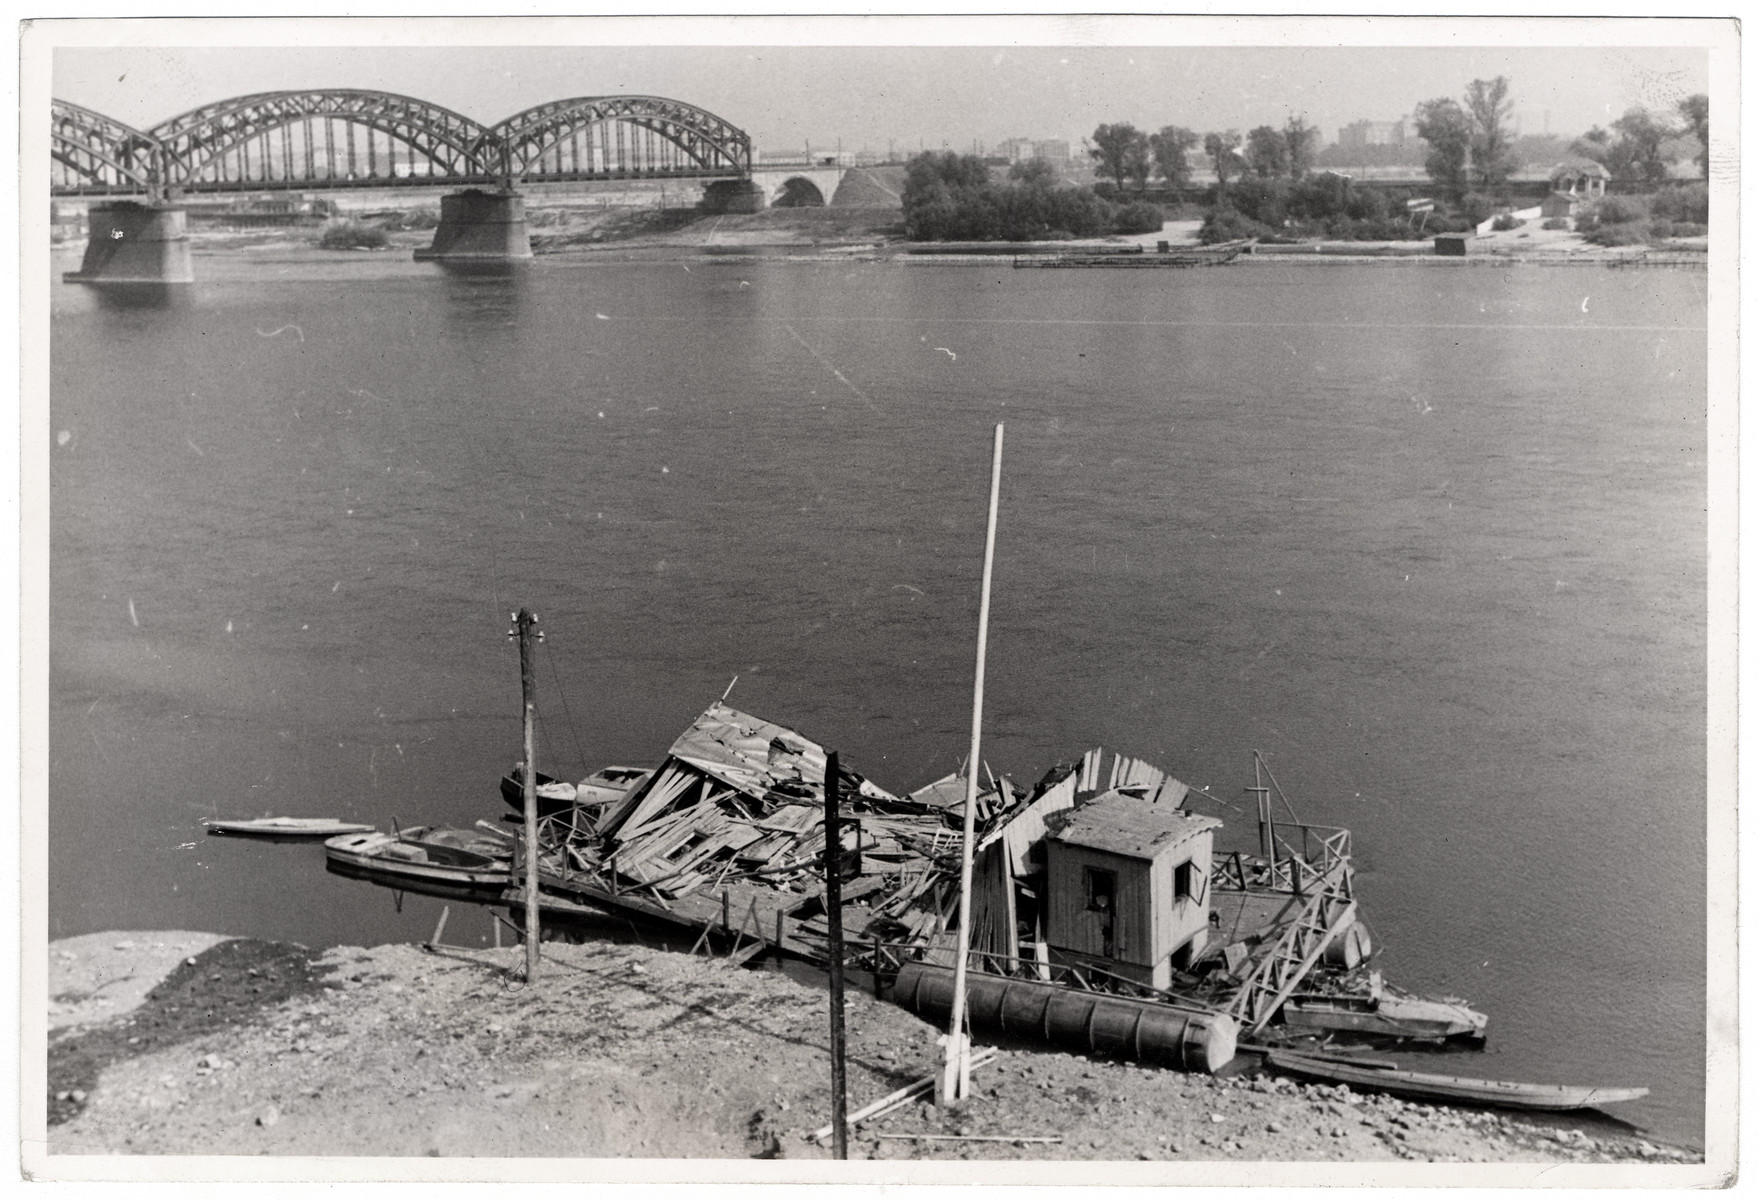 View of a destroyed boat on the Vistula River in besieged Warsaw.